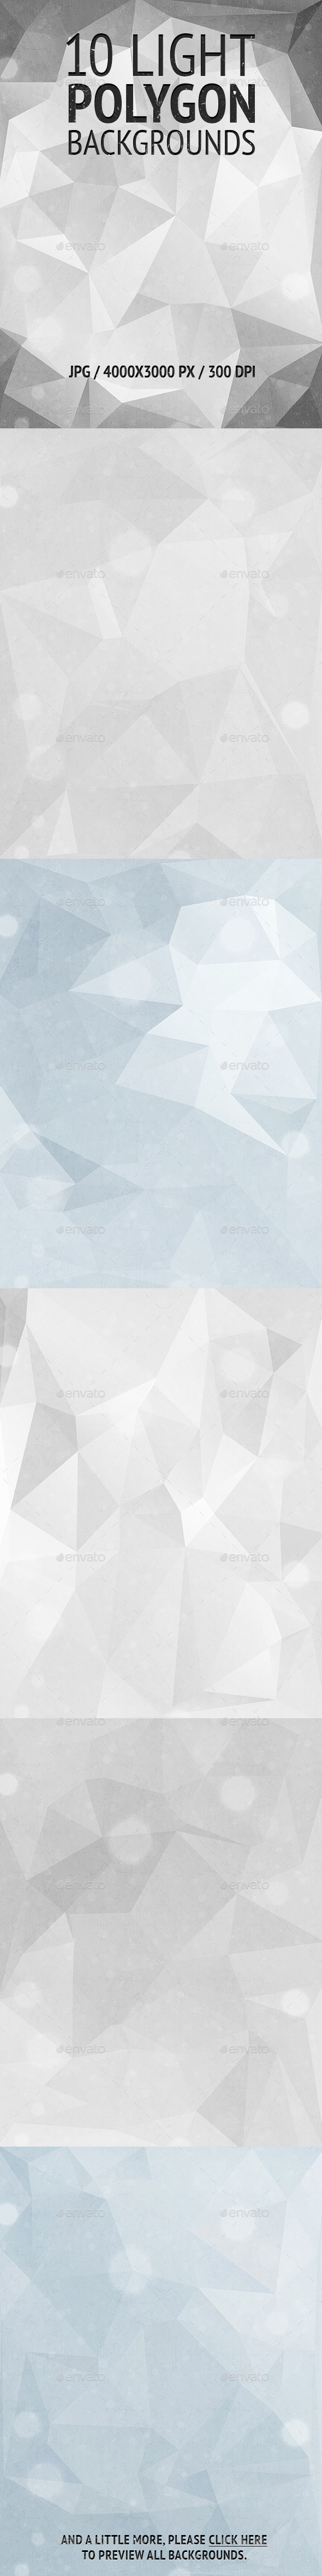 10 Light Polygon Backgrounds - Abstract Backgrounds